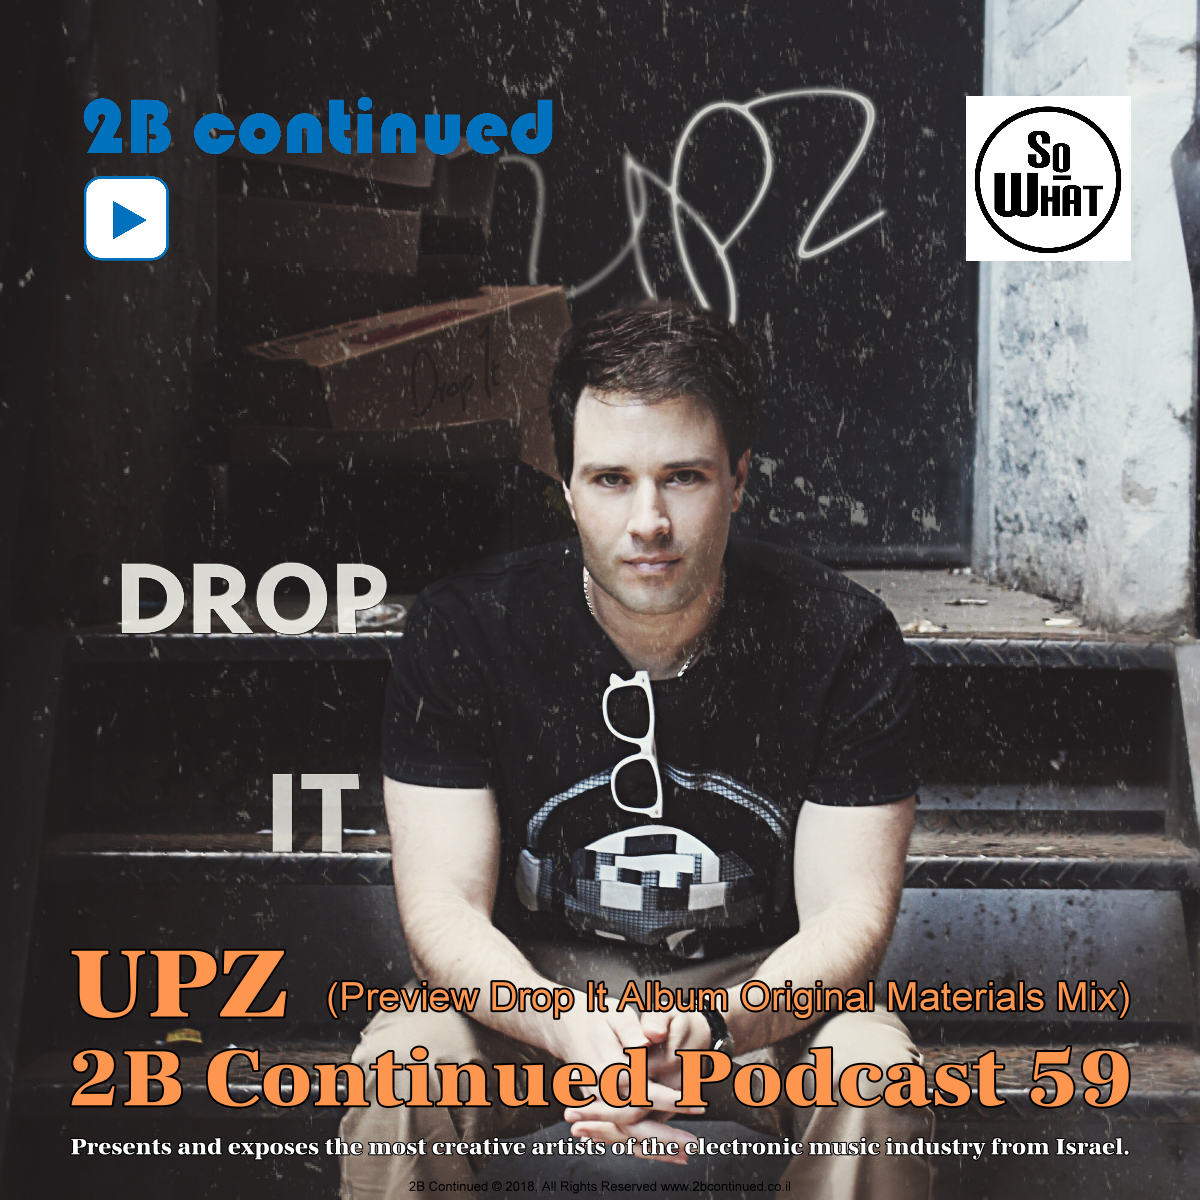 2B Continued Podcast 59 UPZ Best electronic music Israel | 2B Continued